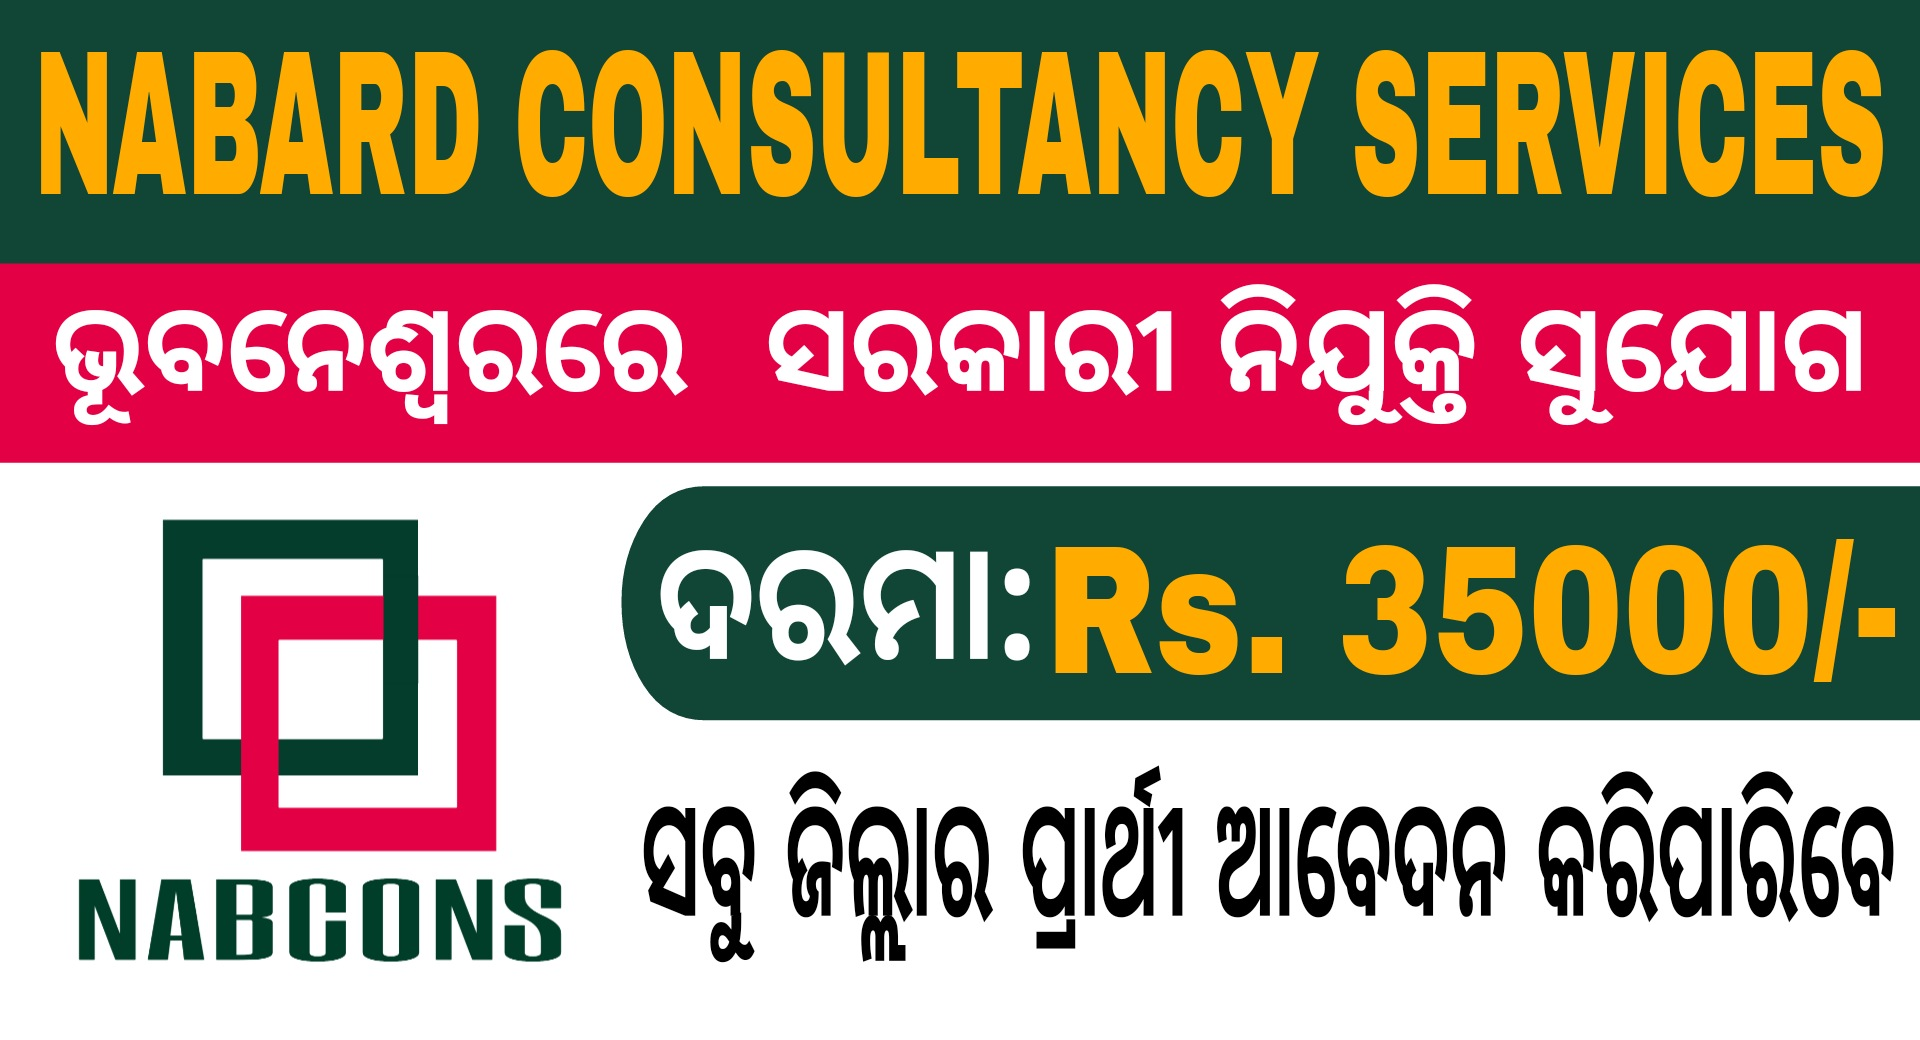 NABARD Consultancy Services Recruitment 2021 – Apply Online for Junior Level Consultant Vacancies